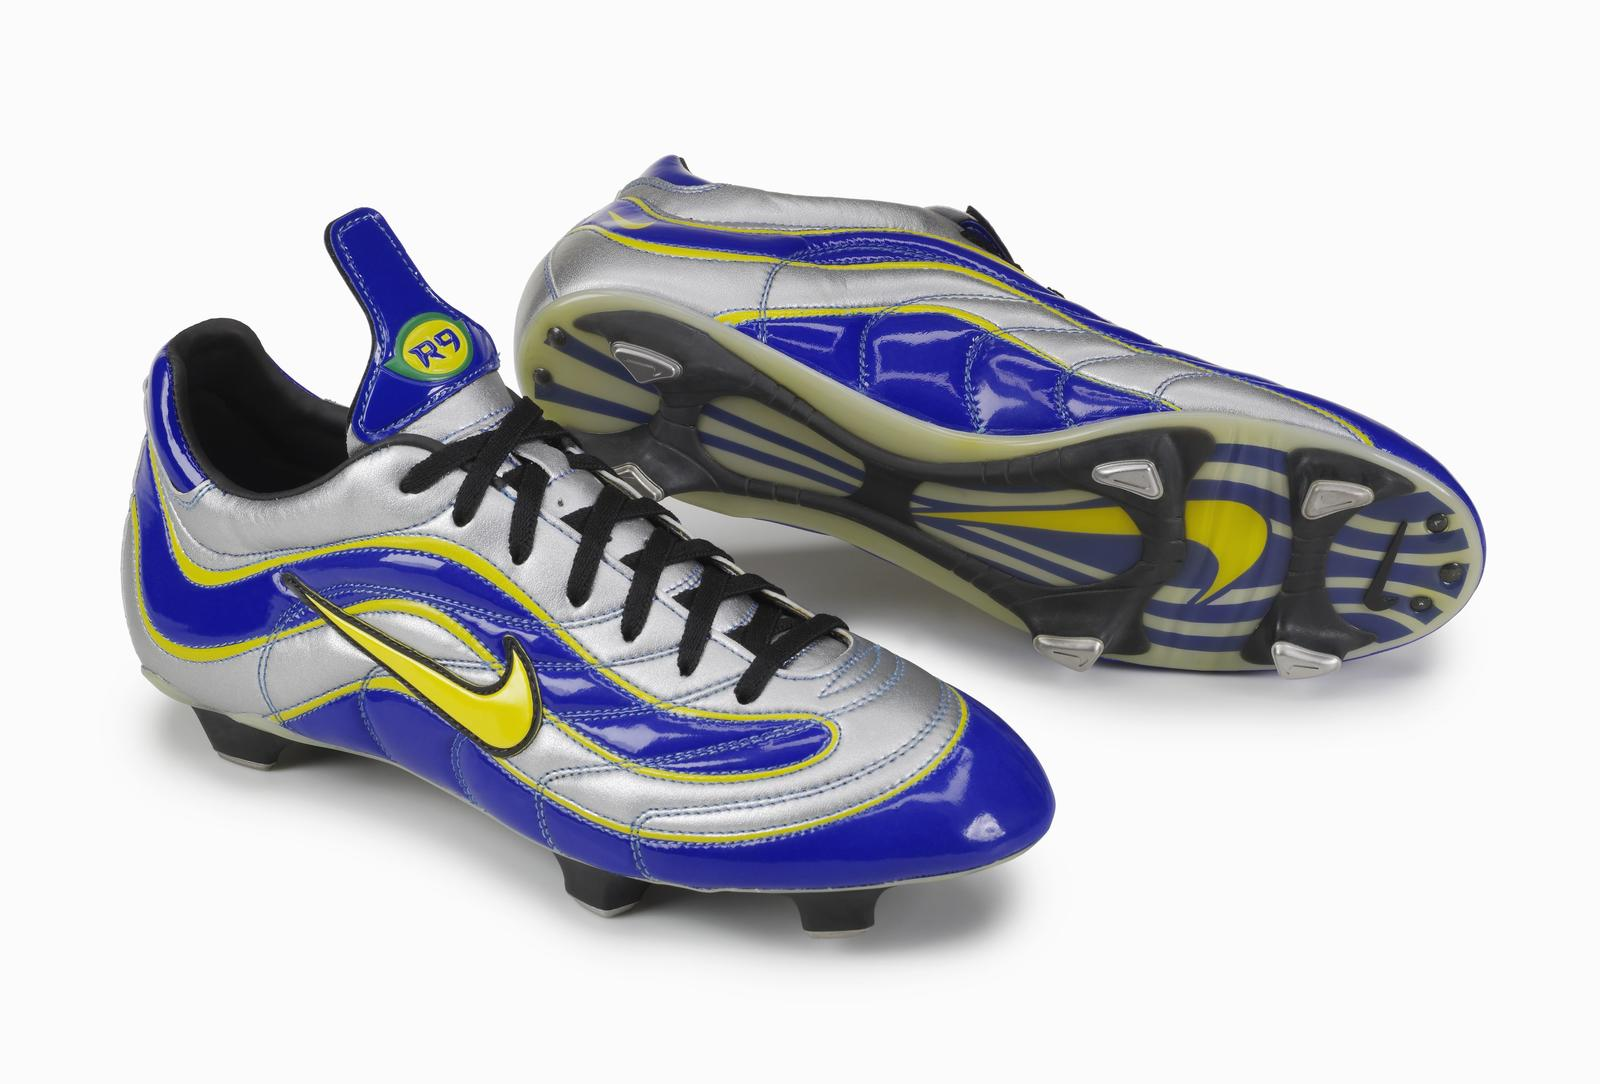 2a13118d4 R9 Mercurial  the original 1998 Mercurial design is one of the most iconic  football boots ever. Image  news.nike.com